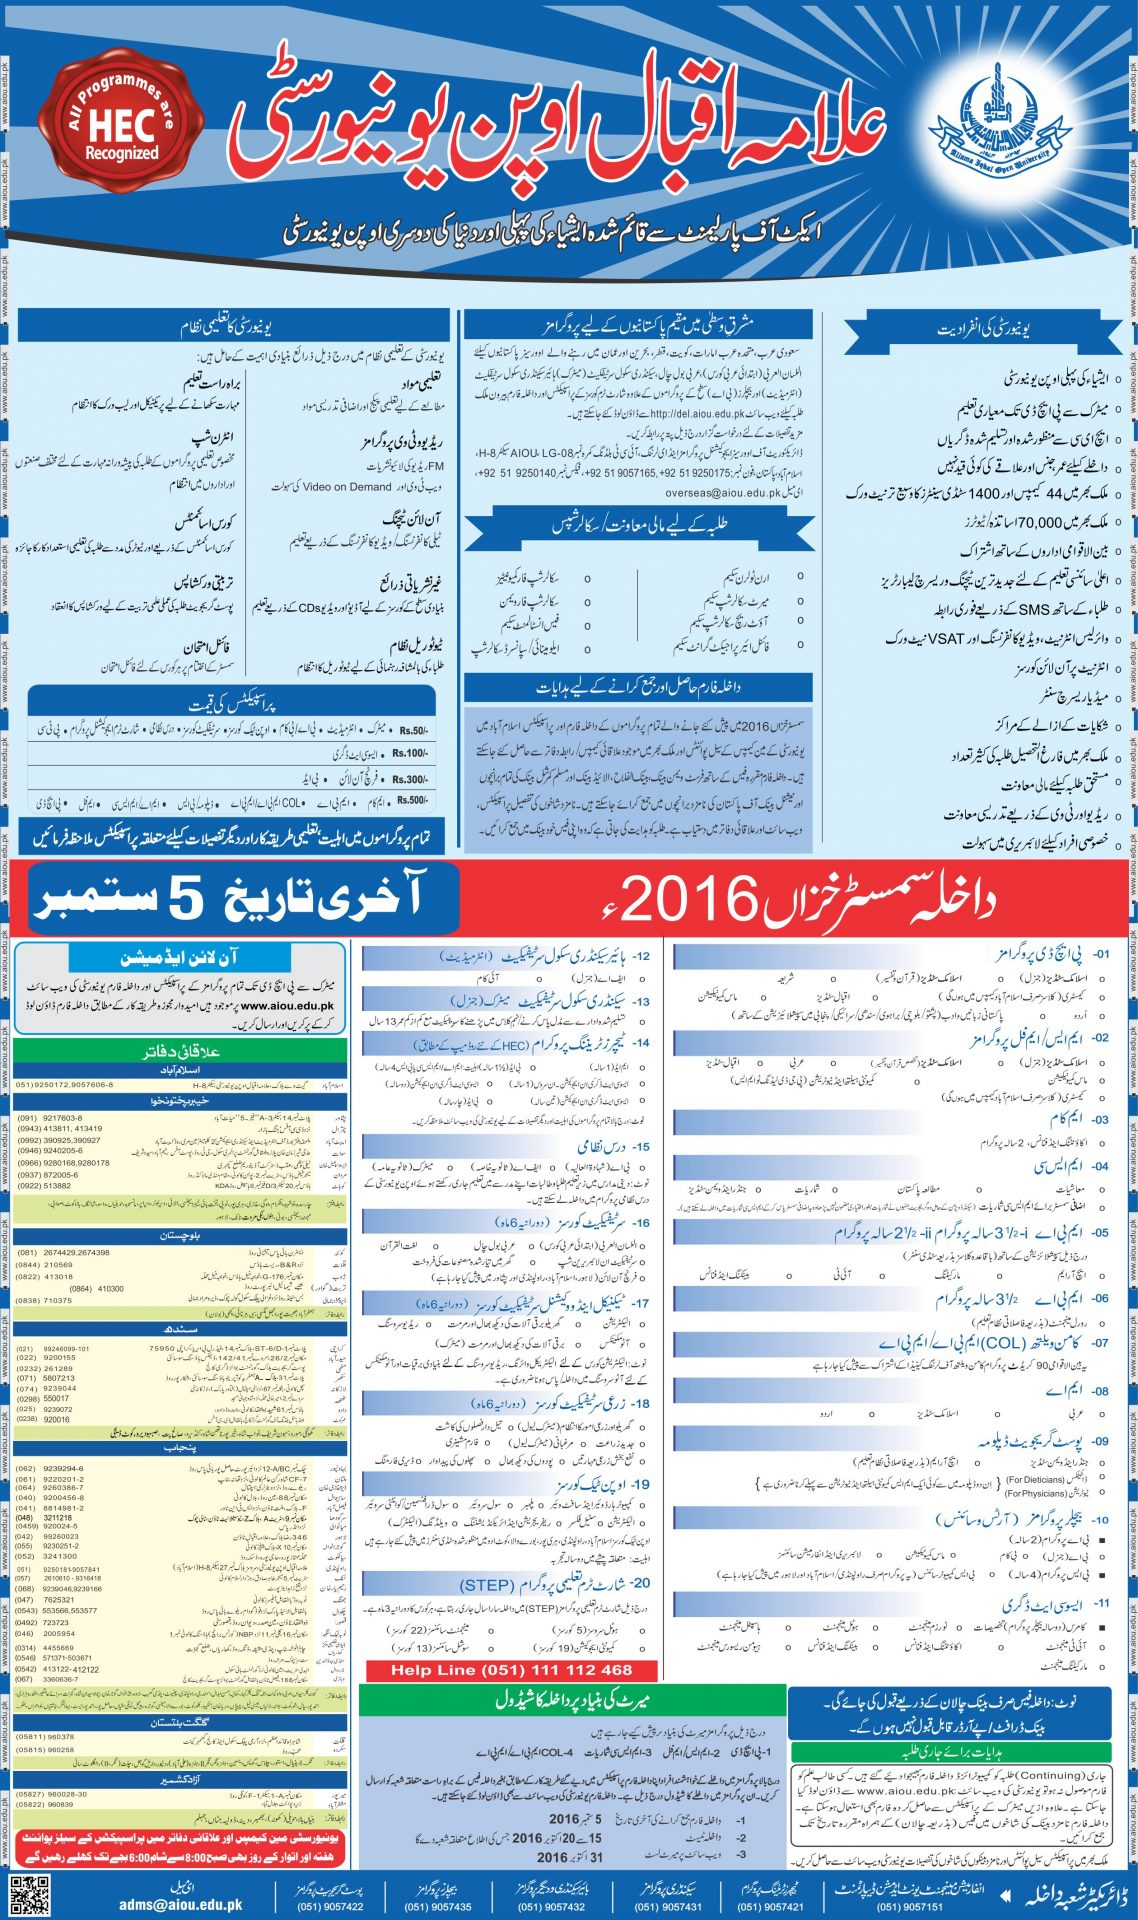 AIOU Autumn Admission 2016 Allama Iqbal Open University Admission Form, Last Date